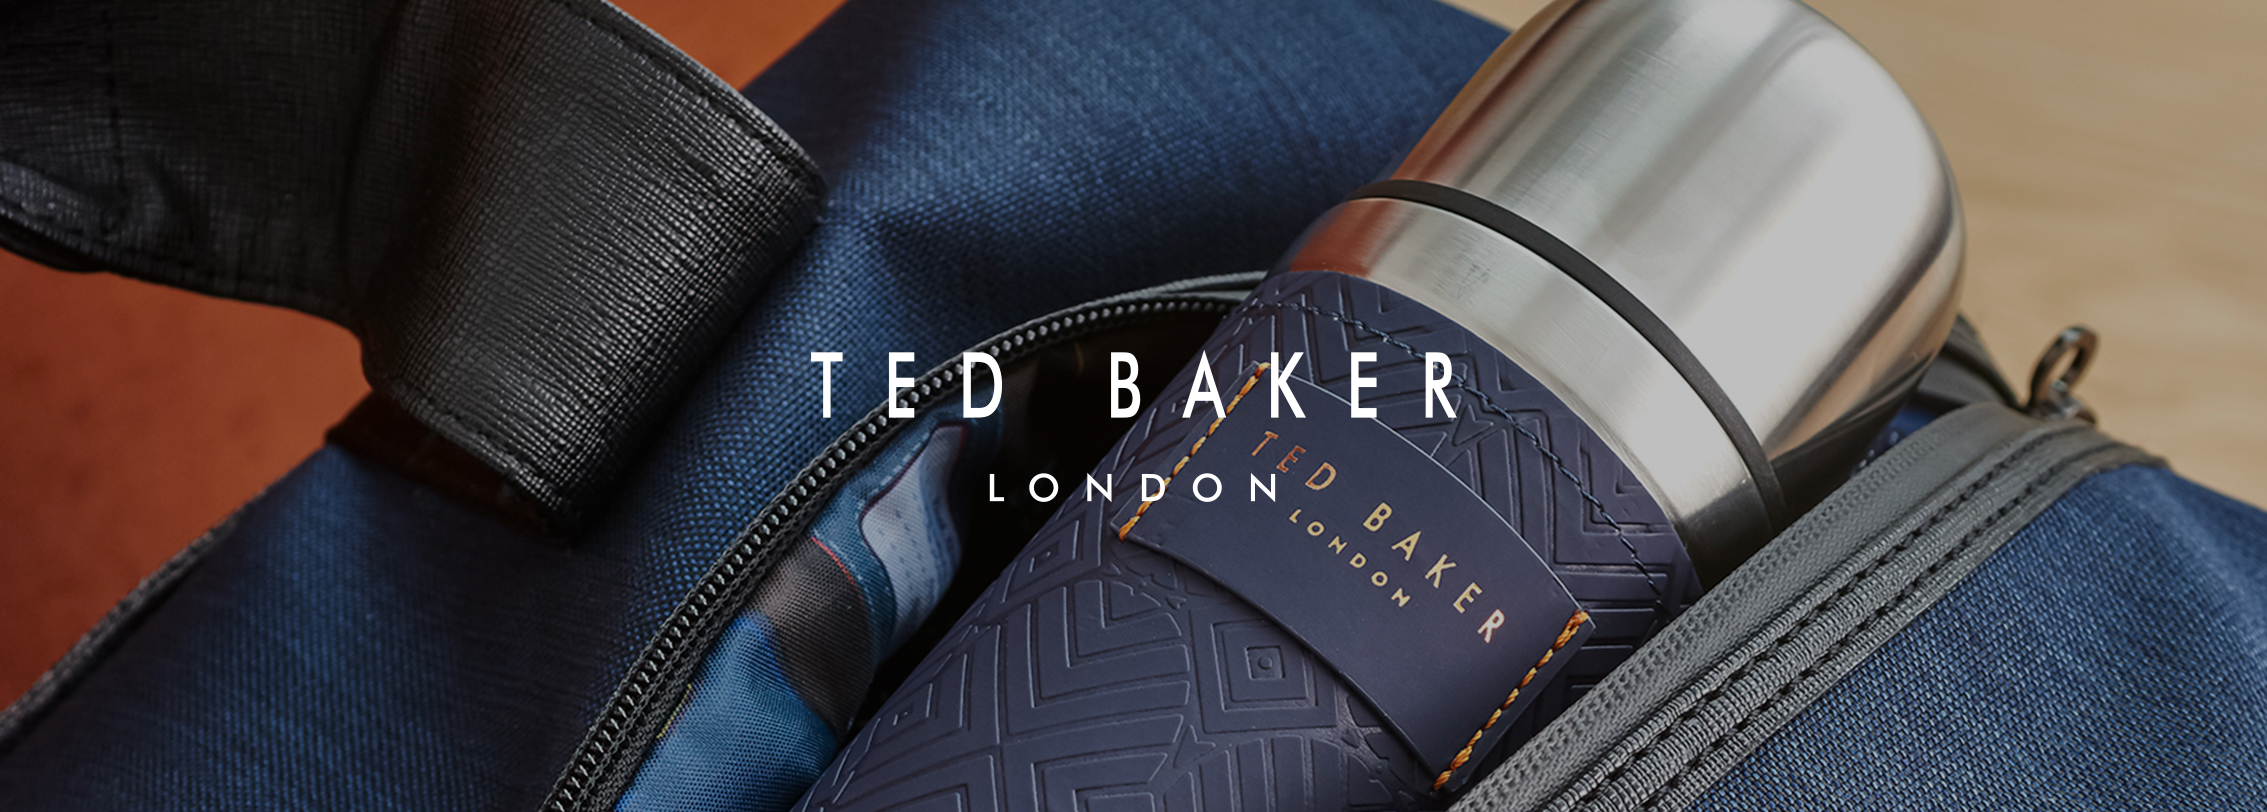 Ted Baker by Wild & Wolf